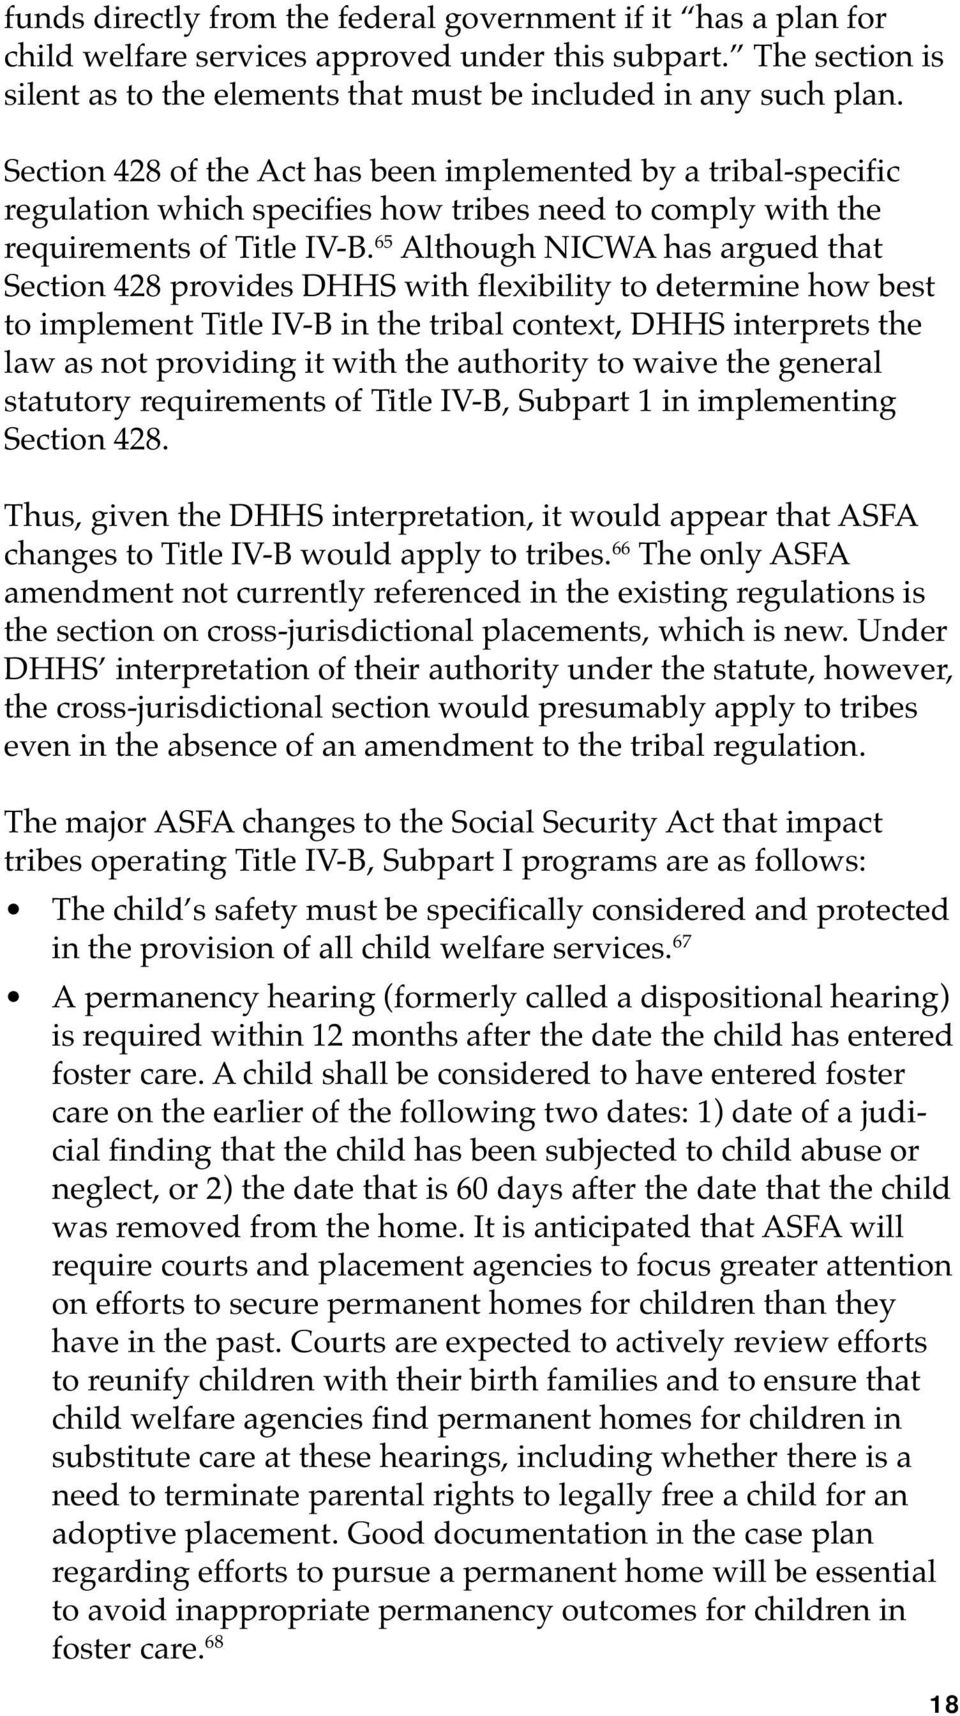 65 Although NICWA has argued that Section 428 provides DHHS with flexibility to determine how best to implement Title IV-B in the tribal context, DHHS interprets the law as not providing it with the